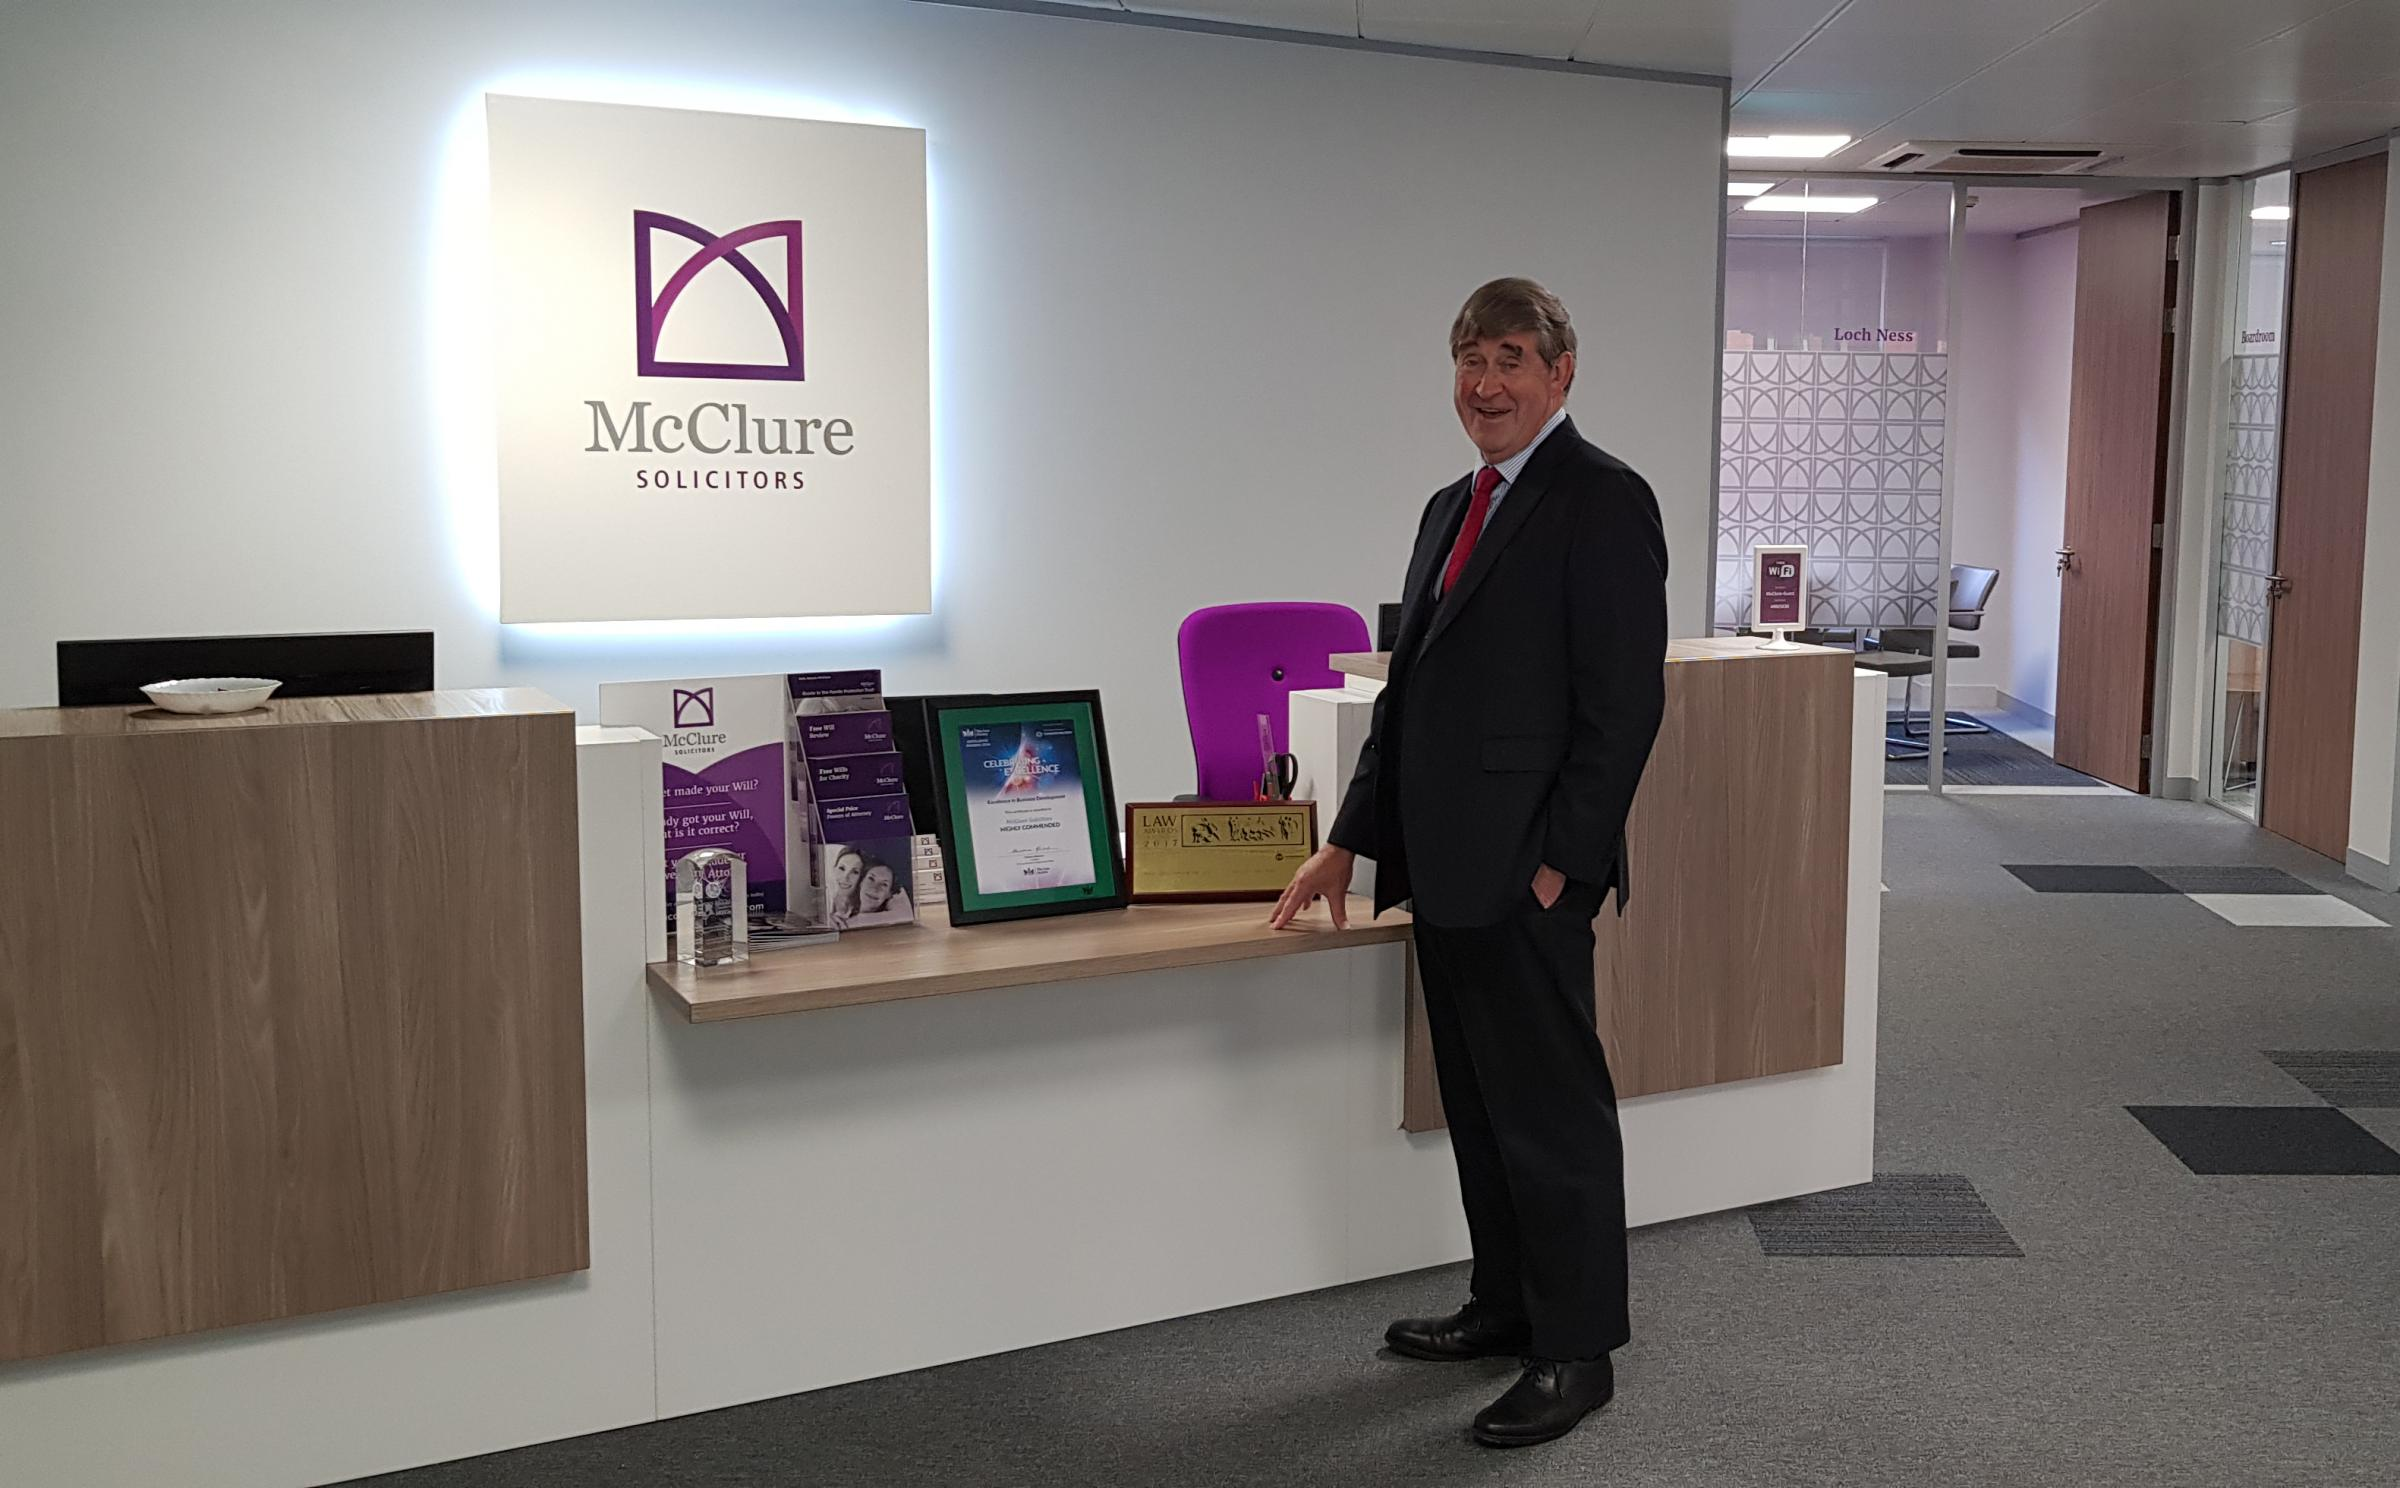 Free-wills firm eyes further expansion after signing Co-op deal